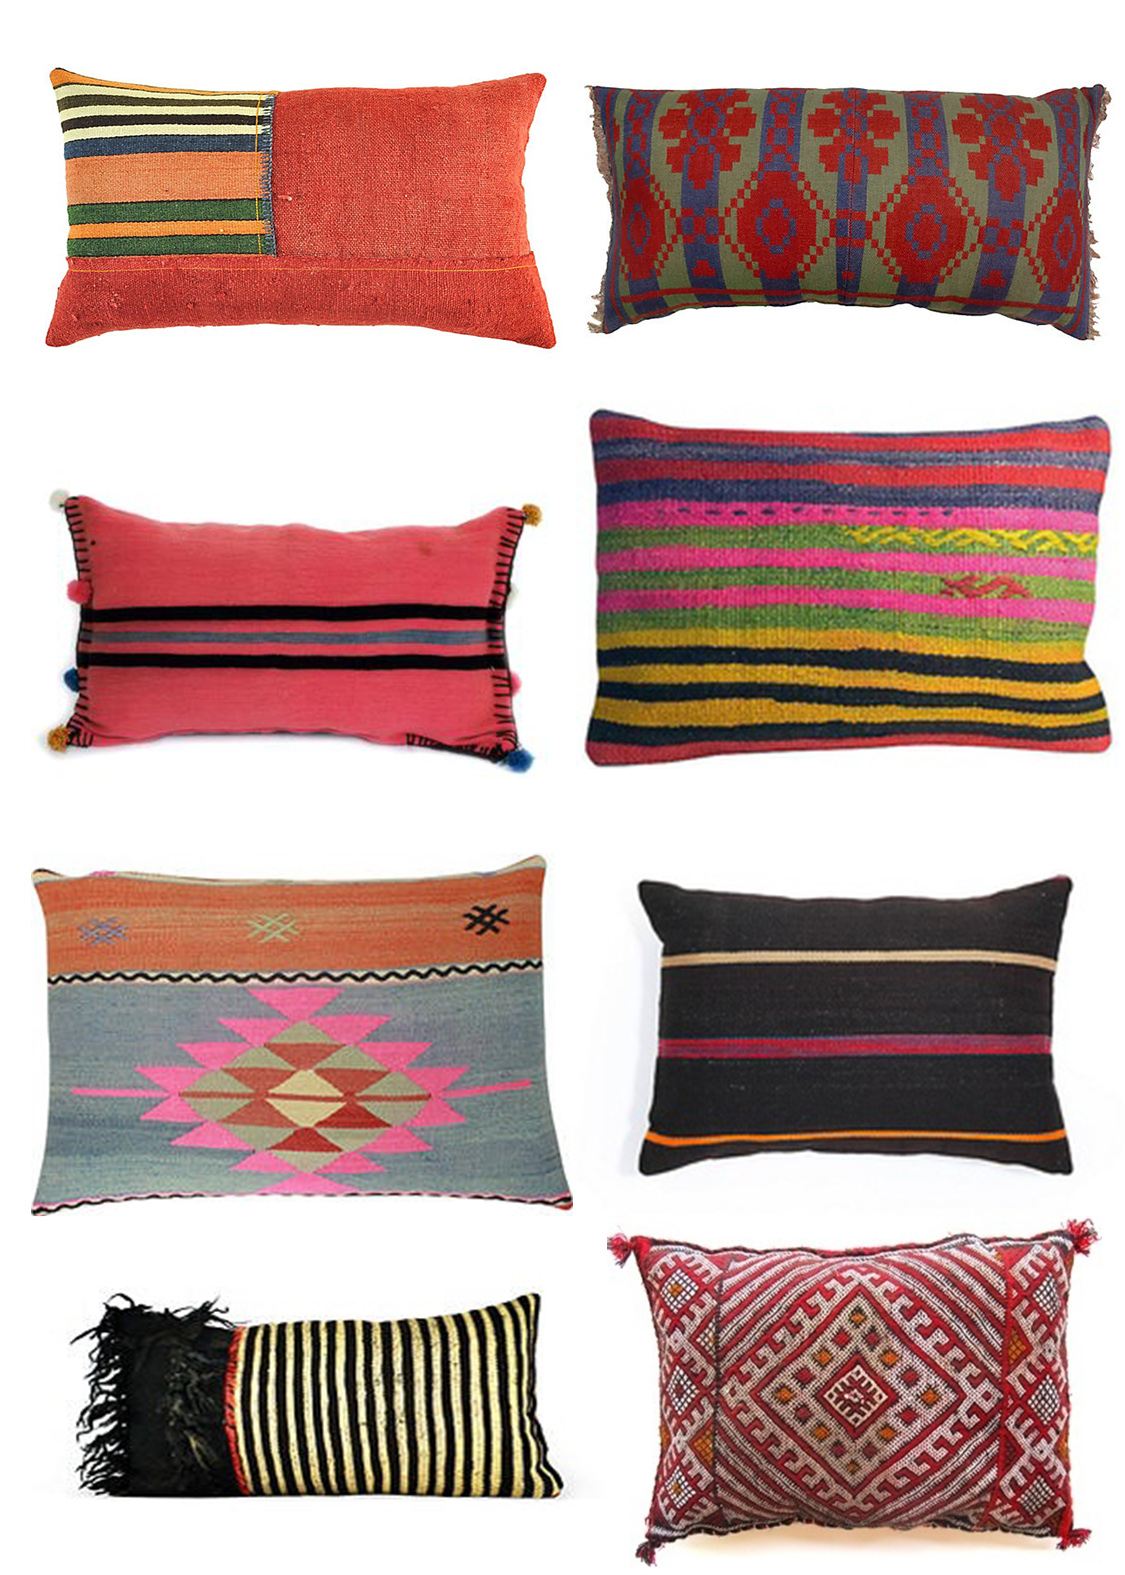 t sponge wouldn of s kilim pillows design out bed kick wouldnt i pillow